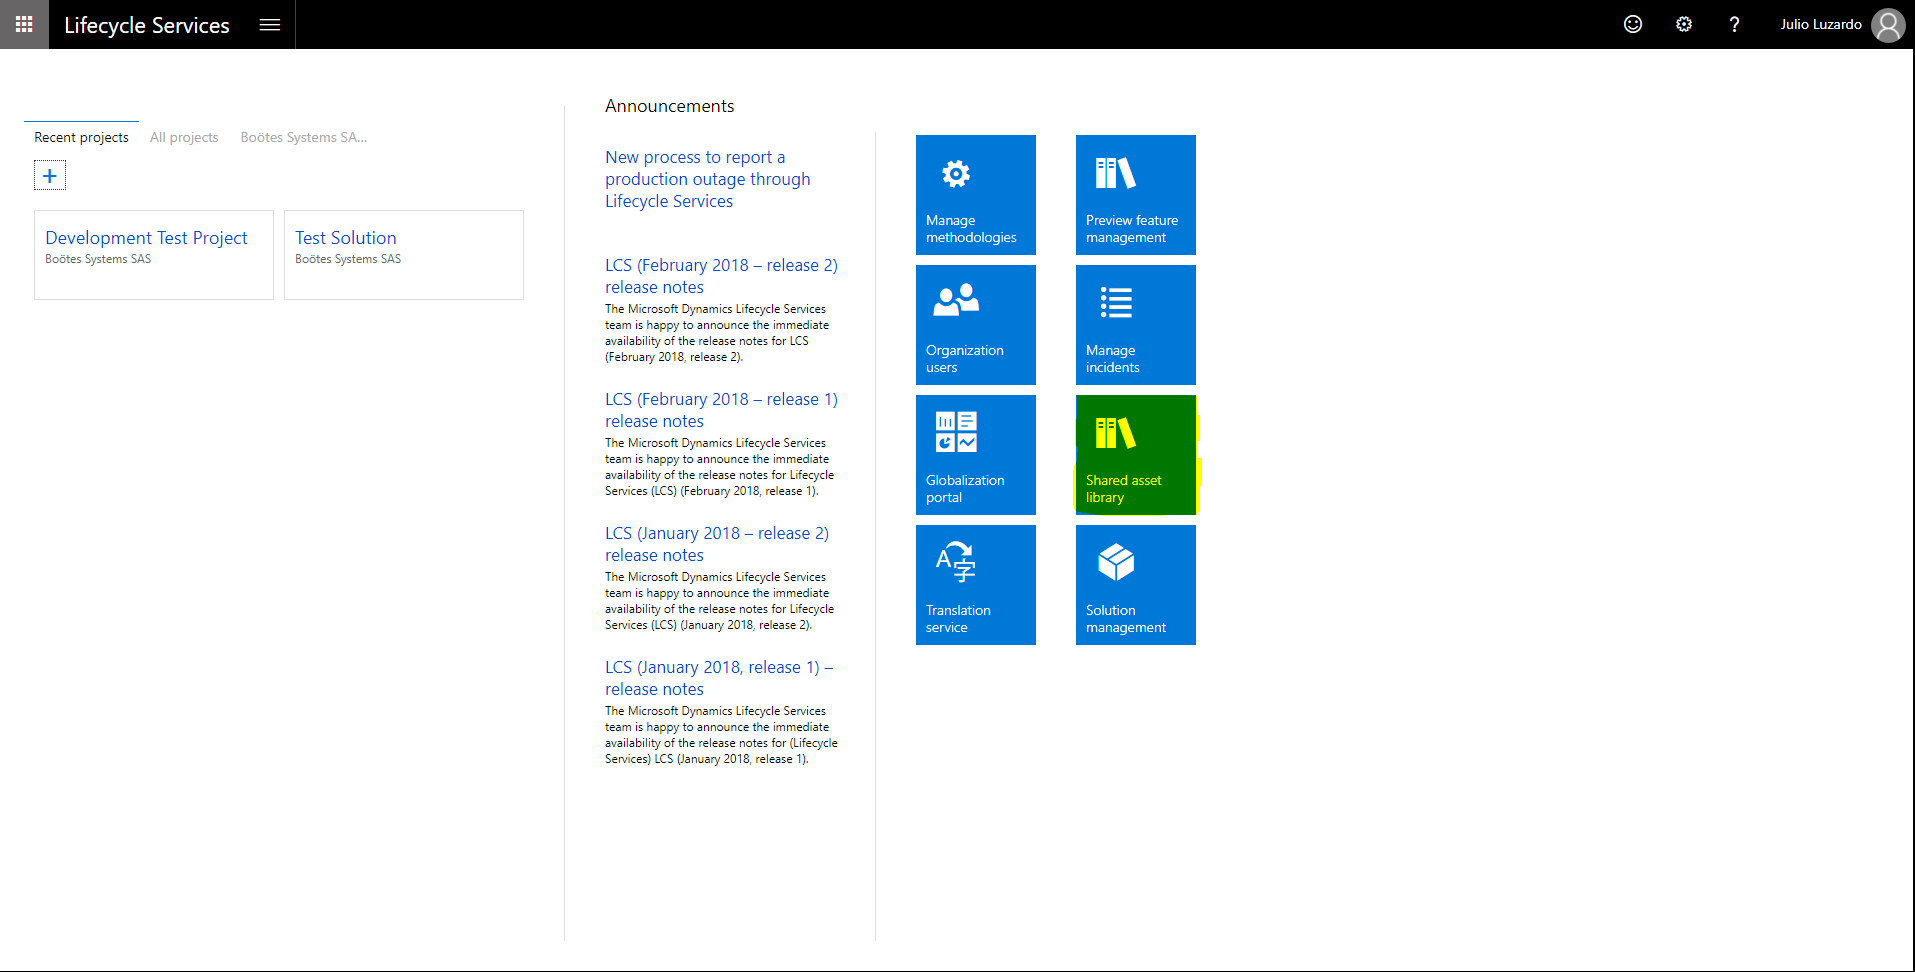 Microsoft Dynamics Lifecycle Services Shared Asset Library